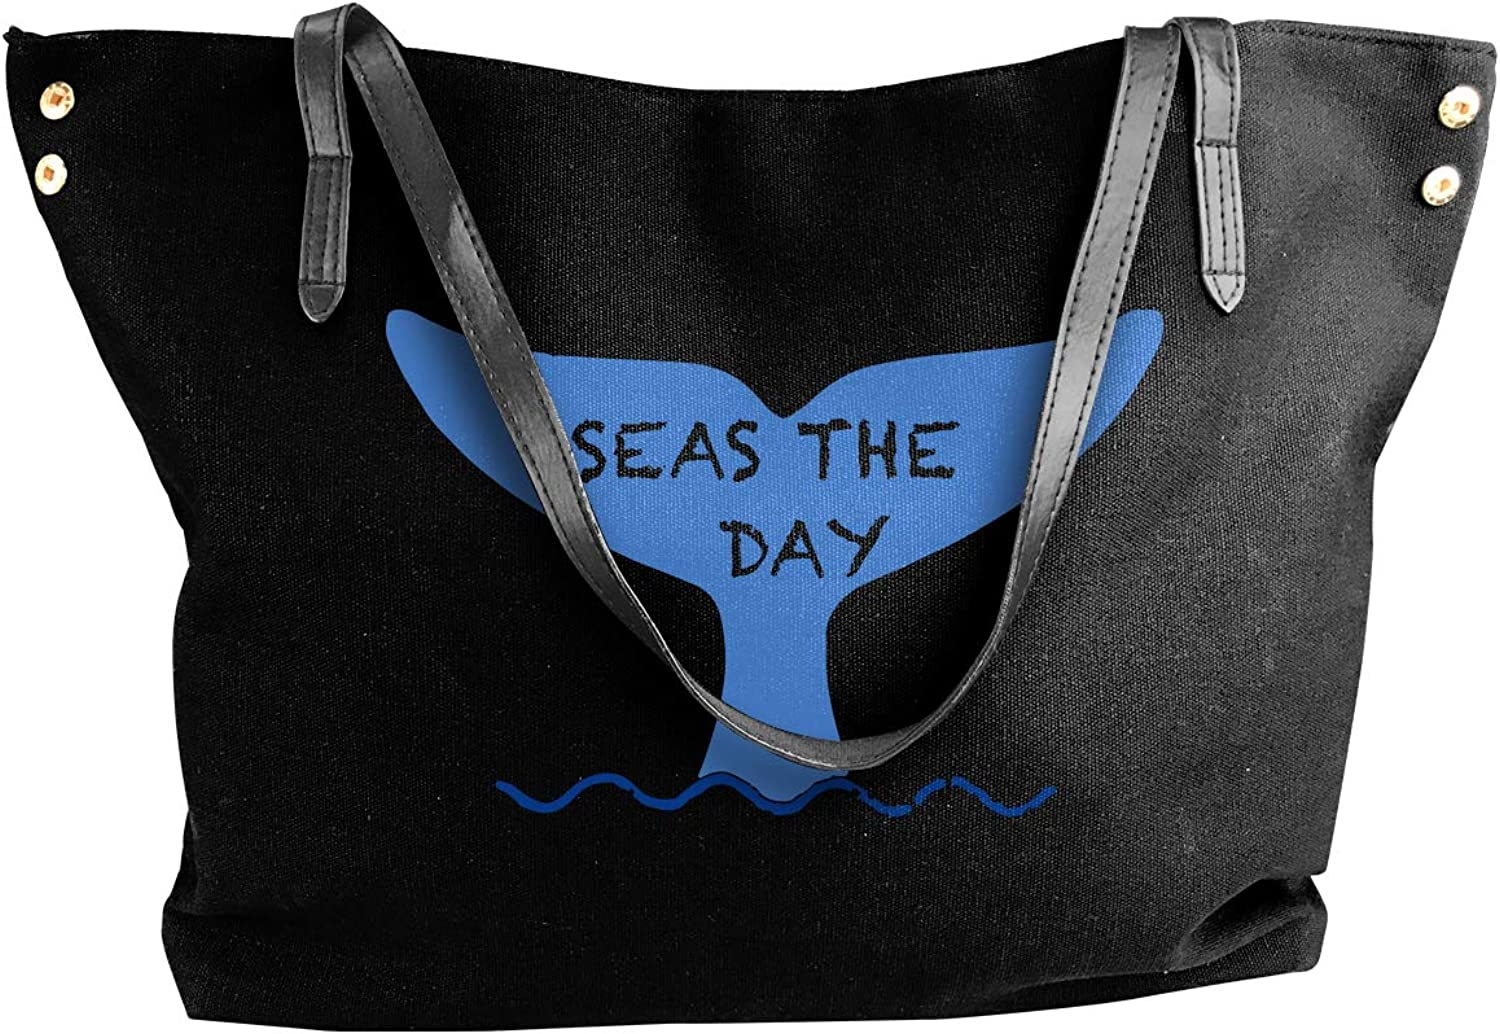 Seas The Day Boat Women'S Leisure Canvas Sling Bag For Travel Big Shopping Bag